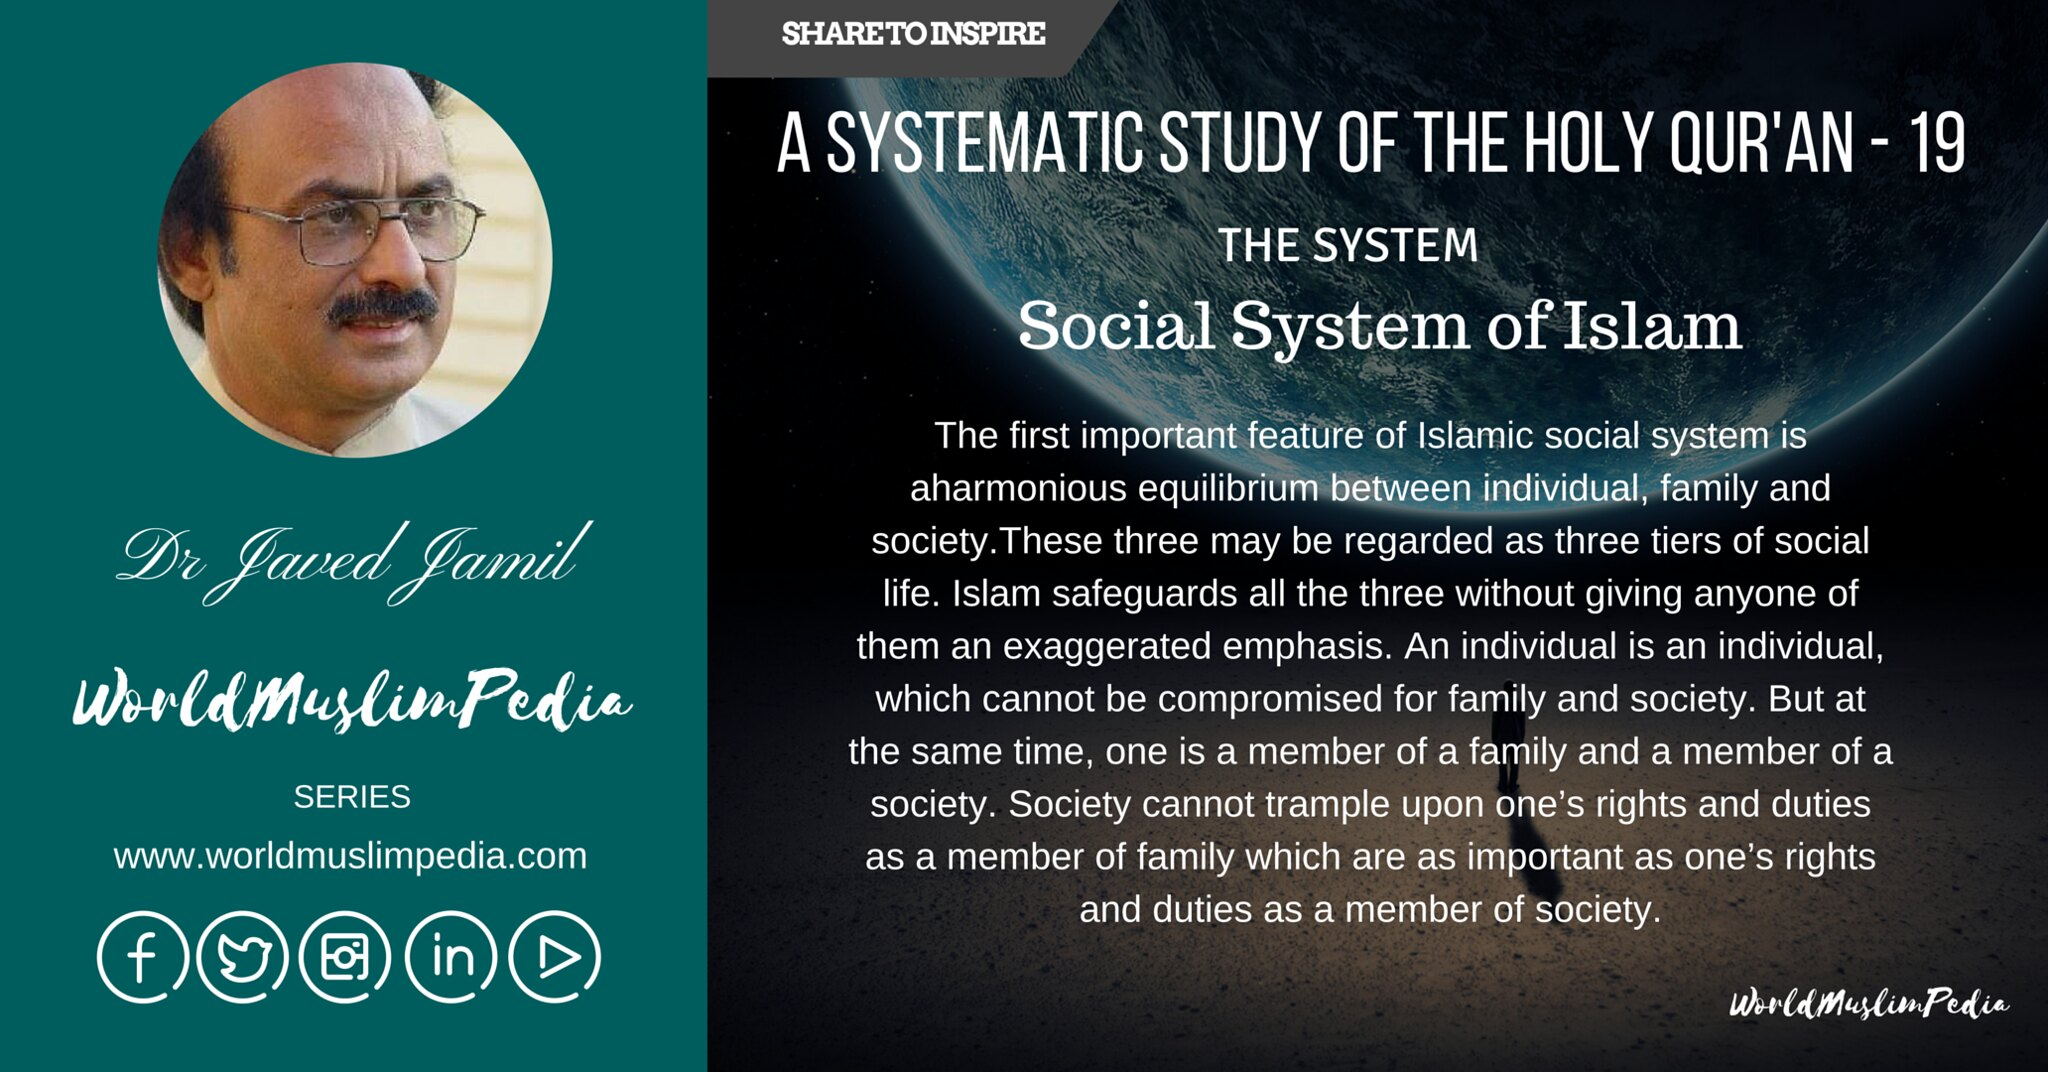 Part IV The System - Social System of Islam